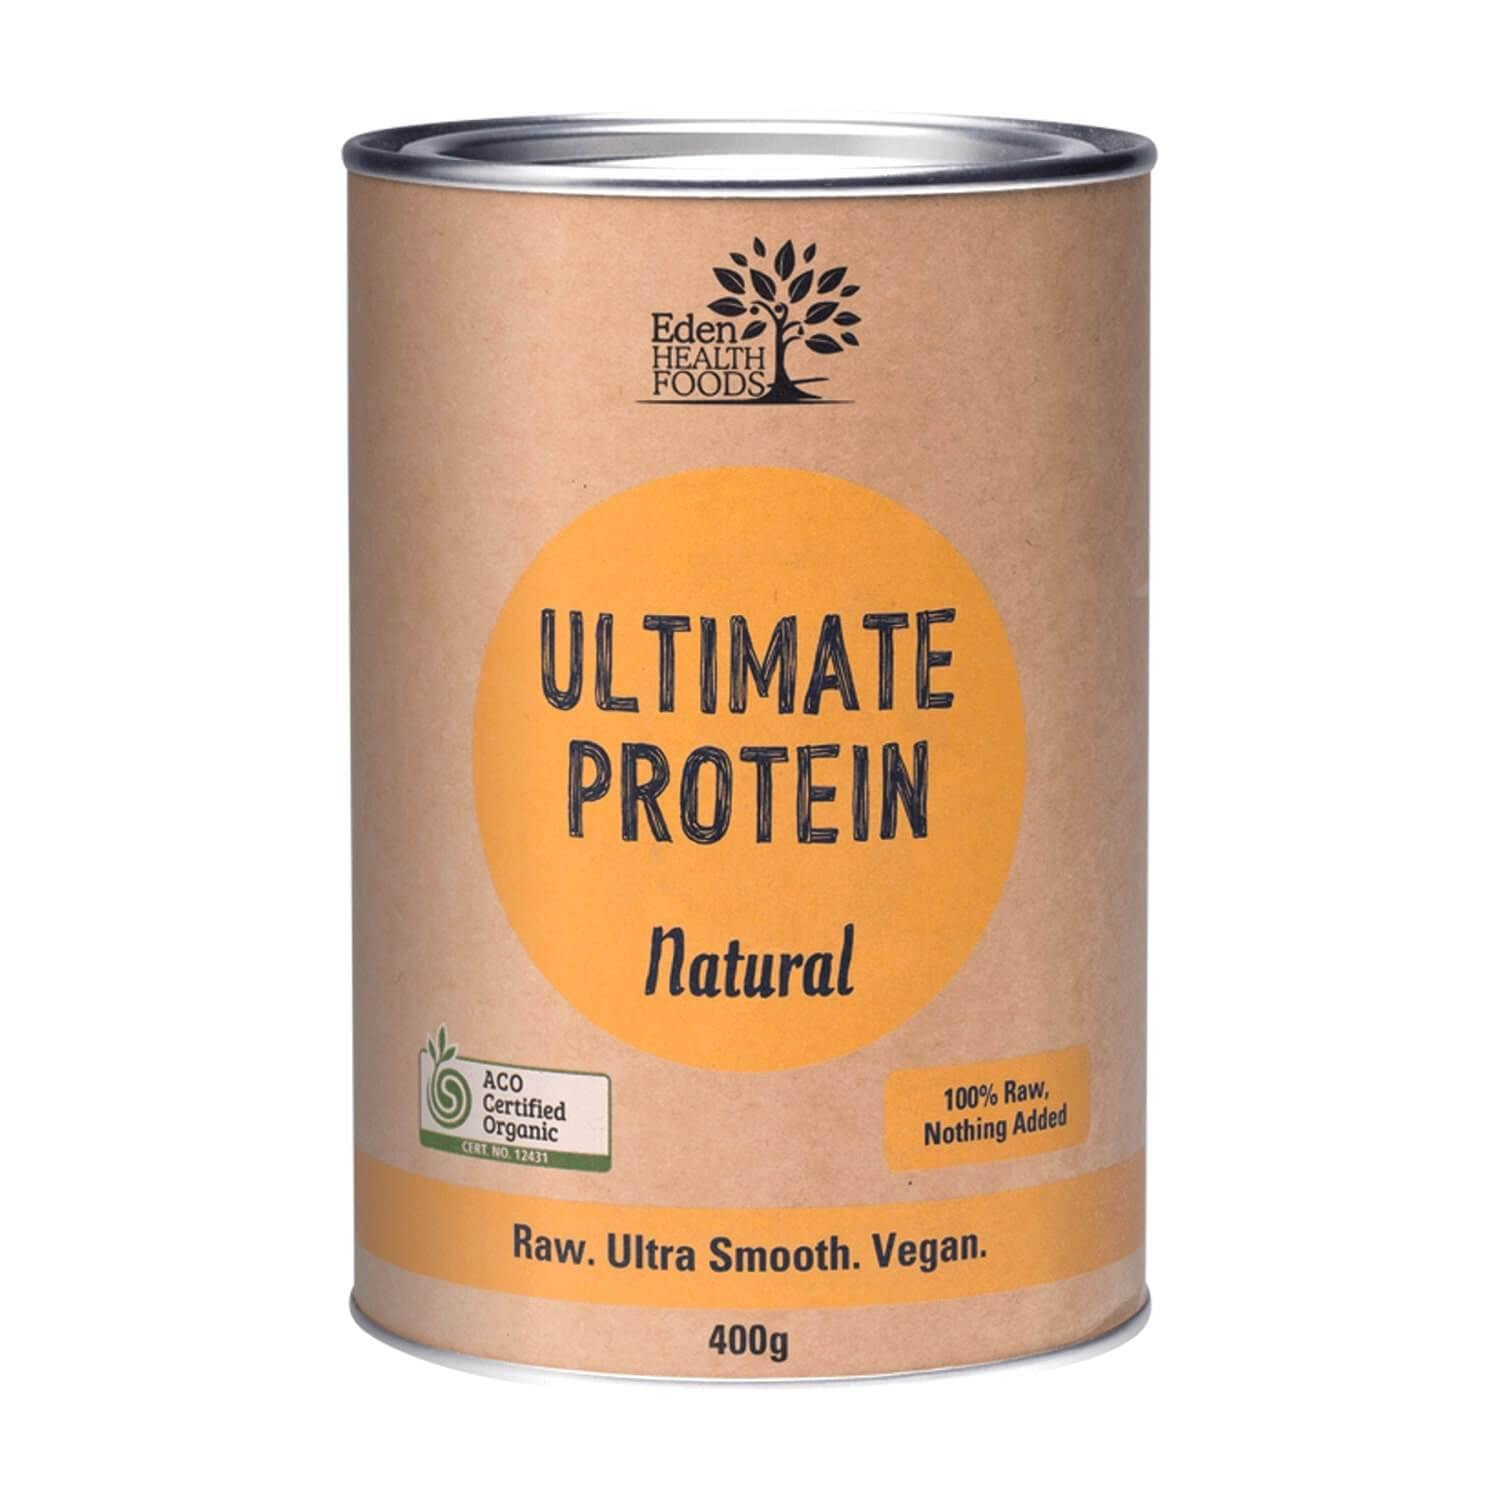 Eden Healthfoods Ultimate Natural Protein Powder - EZ Organic Shop